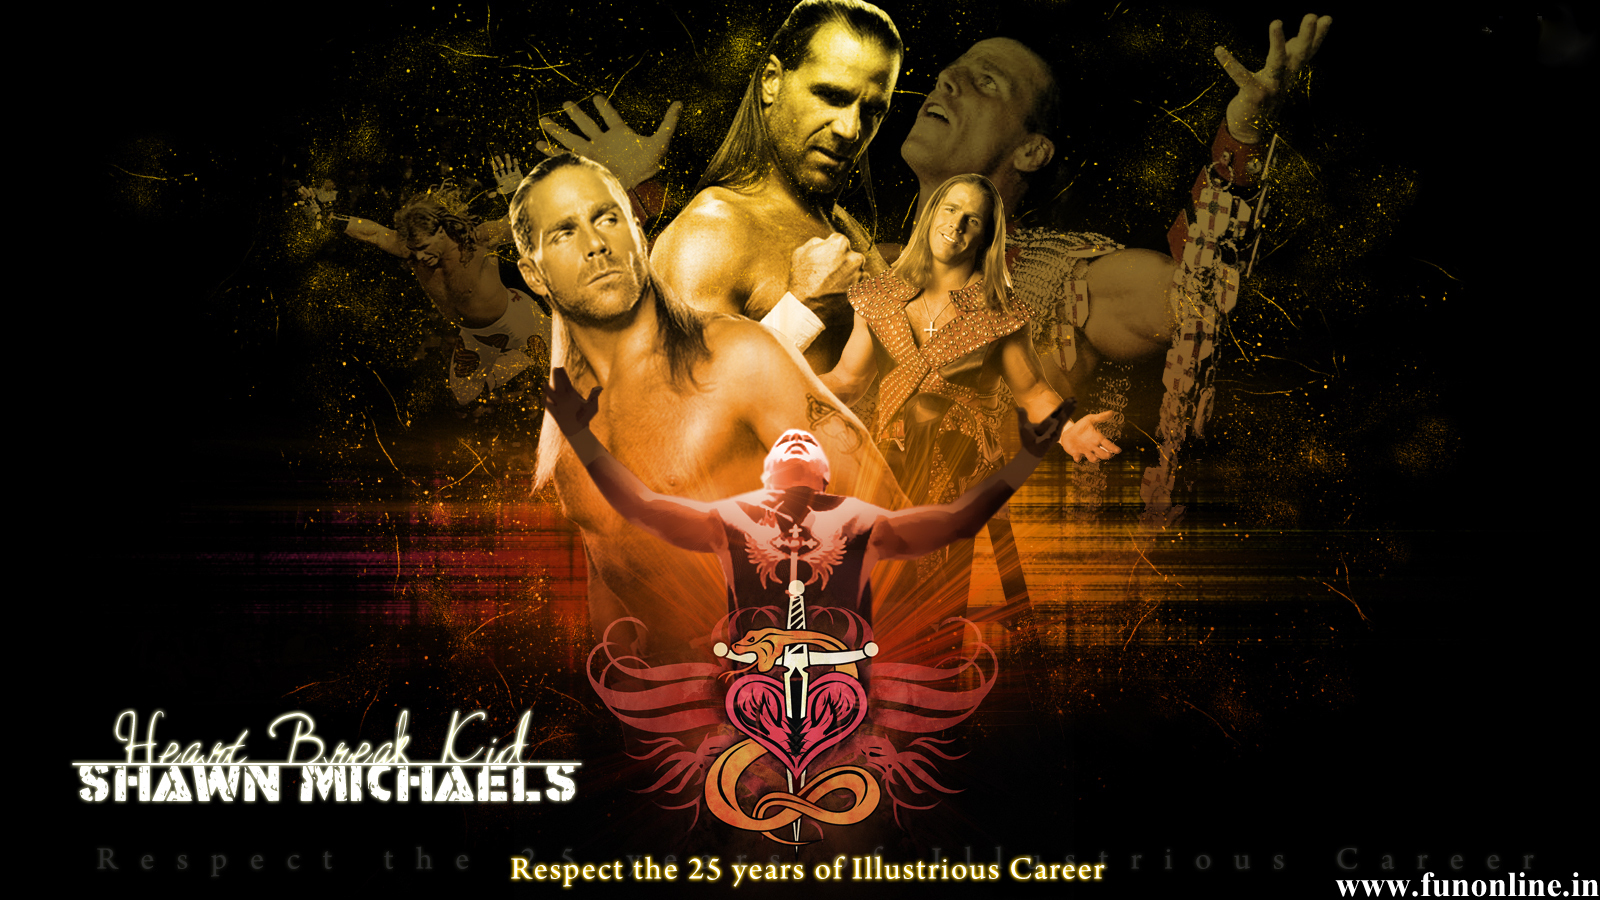 Shawn Michaels Wallpapers WWE HBK Shawn Michaels HD Wallpaper 1600x900